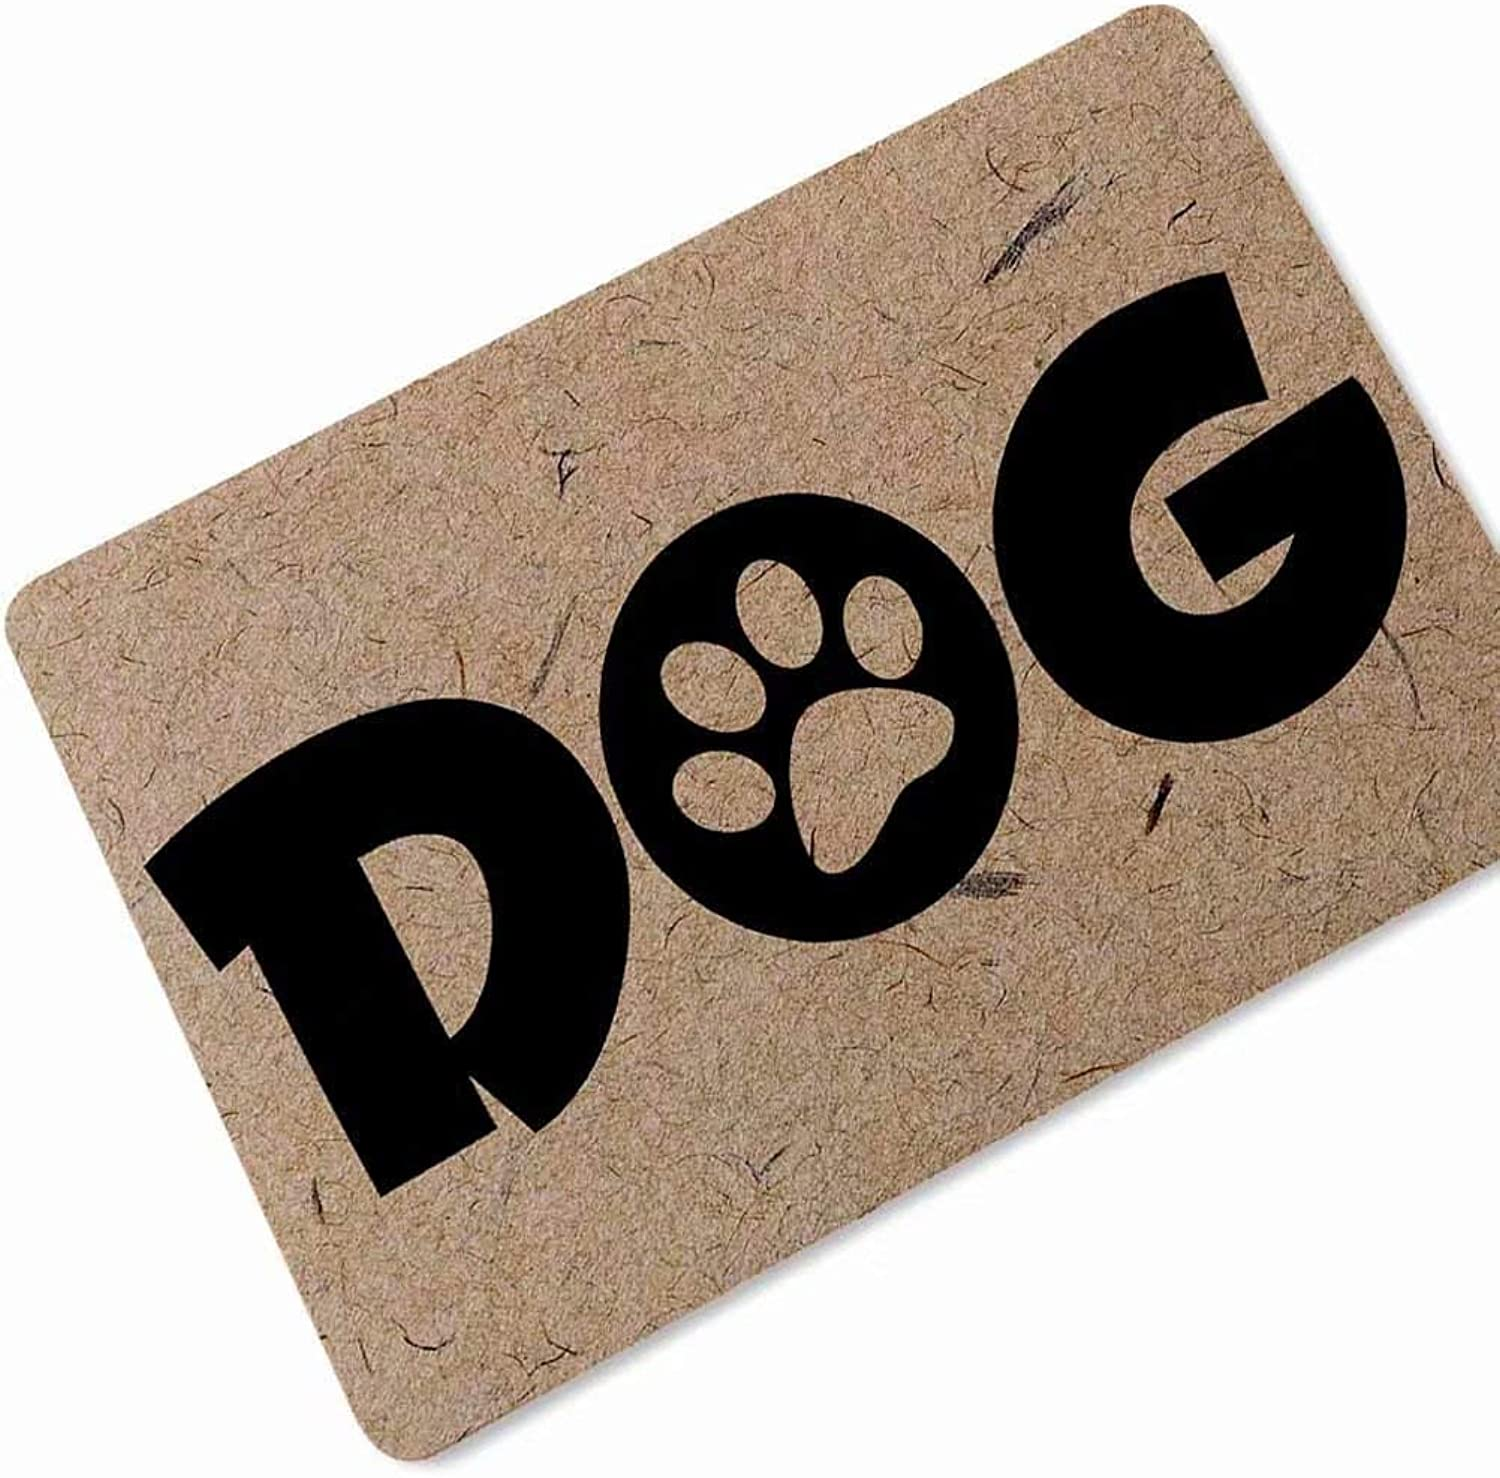 YQ Park Rubber Collection Doormat, Rubber Backed Mat Dog Paws Rug 23.6x35.4